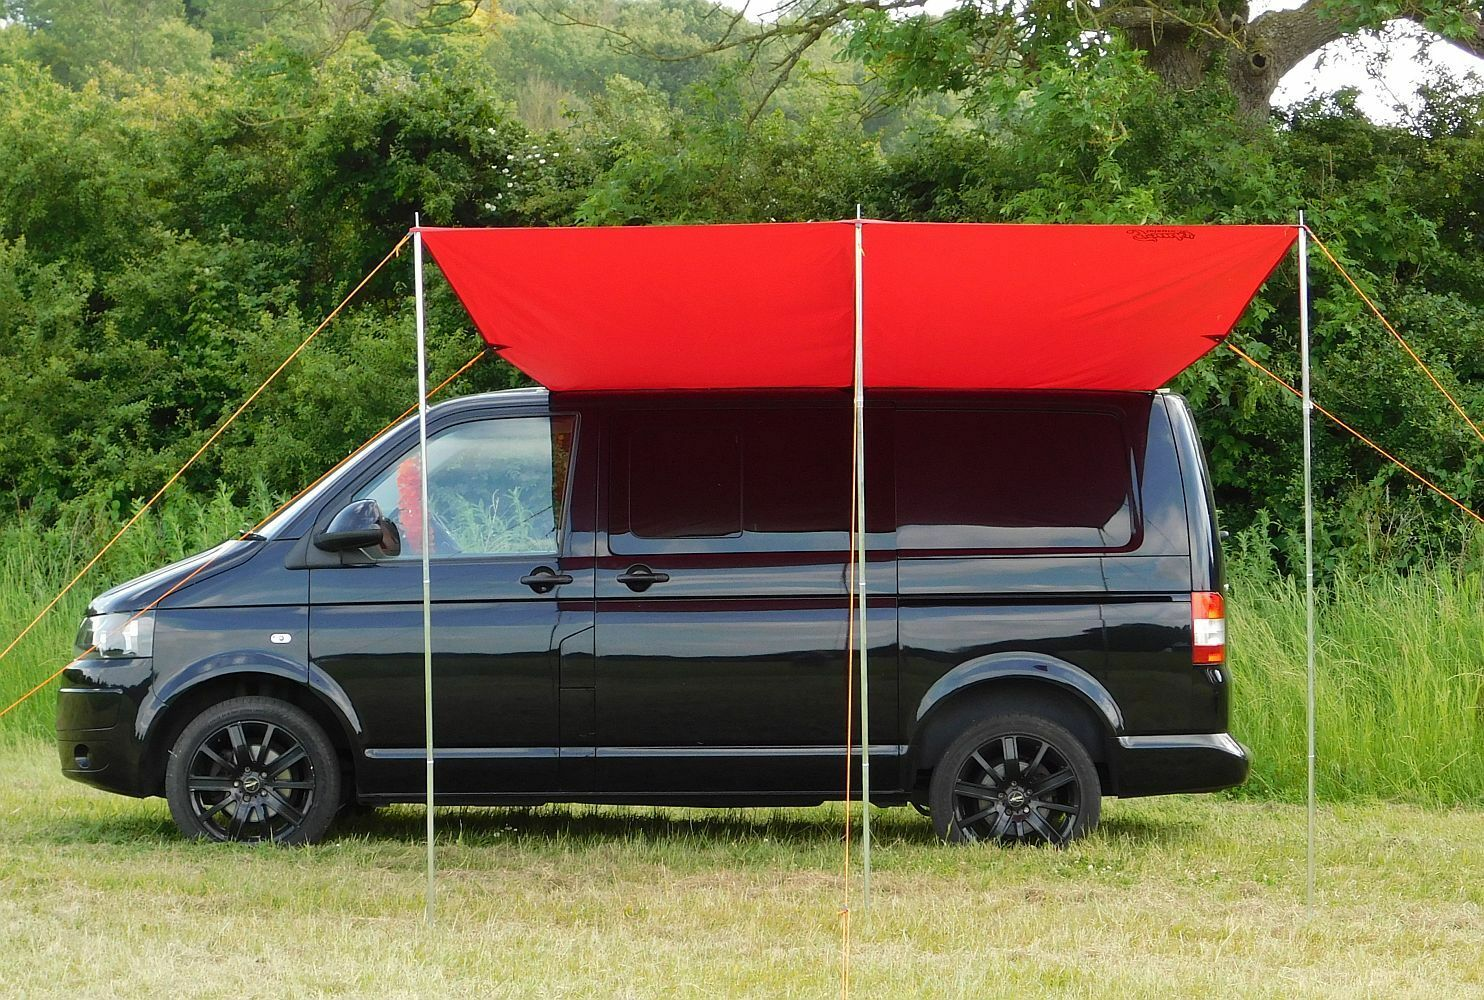 Vw Campervan Sun Canopy Awning For T4 T5 T6 Chianti Red